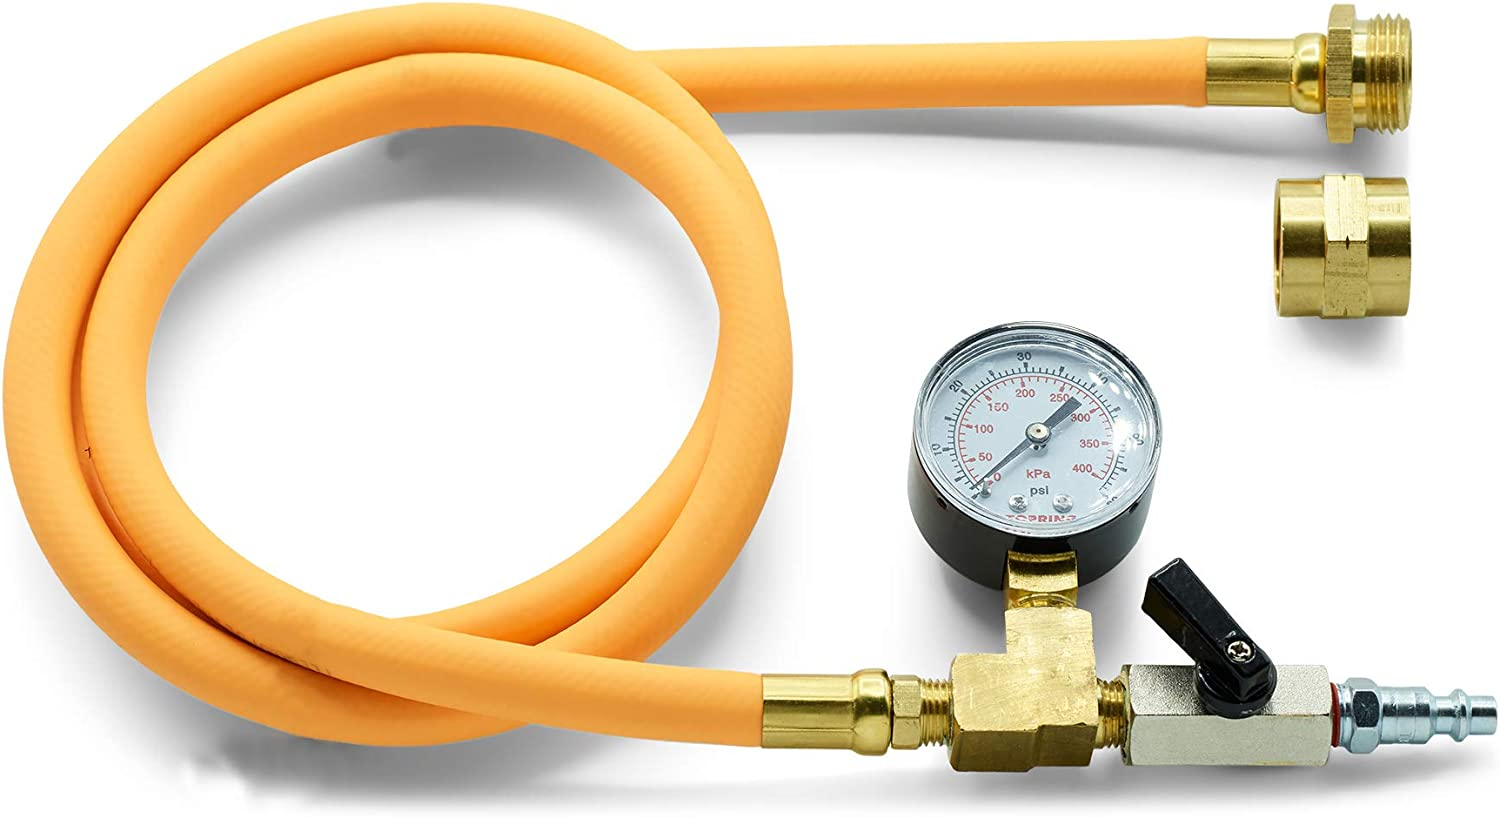 TOPRING Long Hose Air Compressor Water Blow Out Adapter with Pressure Gauge, RV Winterizing Kit with Male and Female Garden Hose Connector